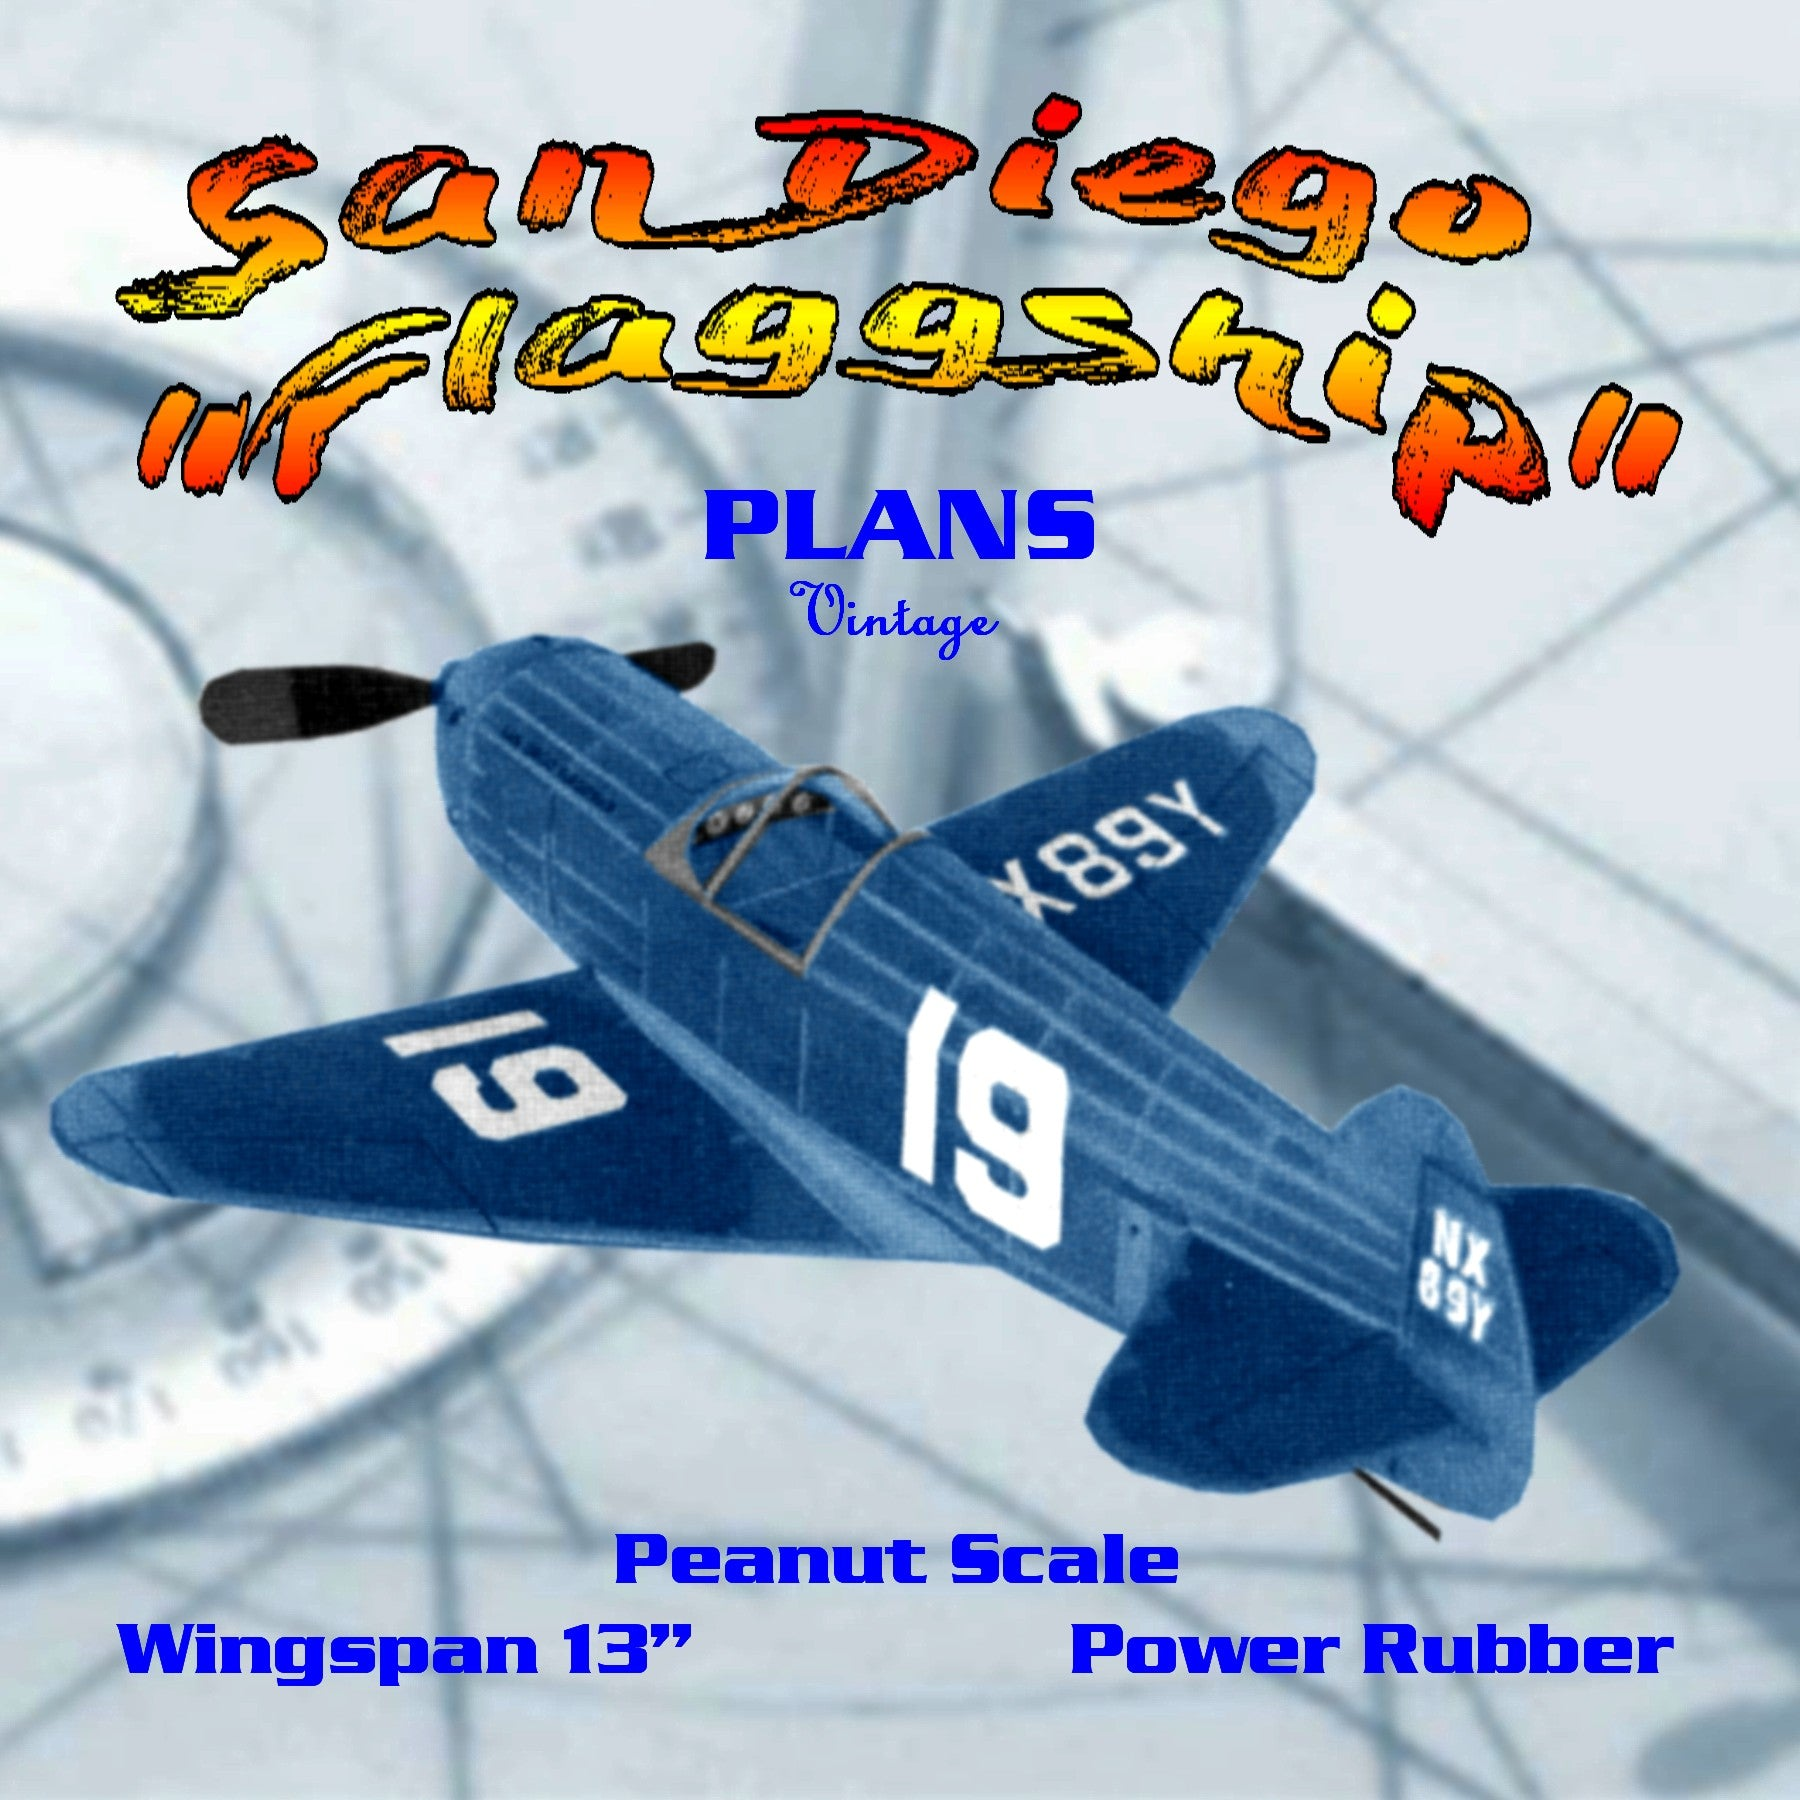 Full size printed plans Peanut Scale San Diego Flaggship An ill-fated 1930's Thompson Trophy racer